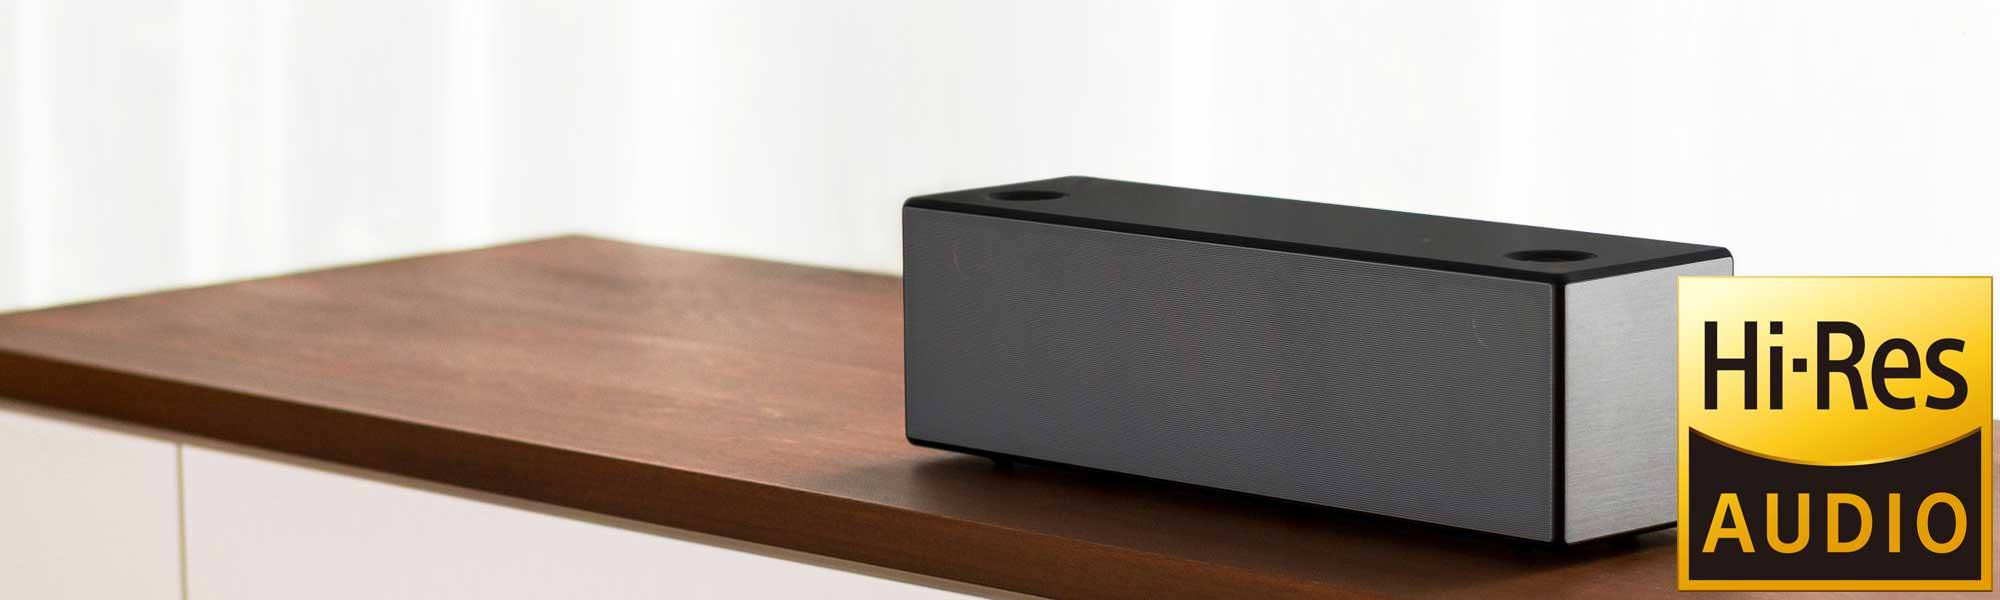 Sony SRS-X99 Multiroom Wireless High Resolution Audio Speaker